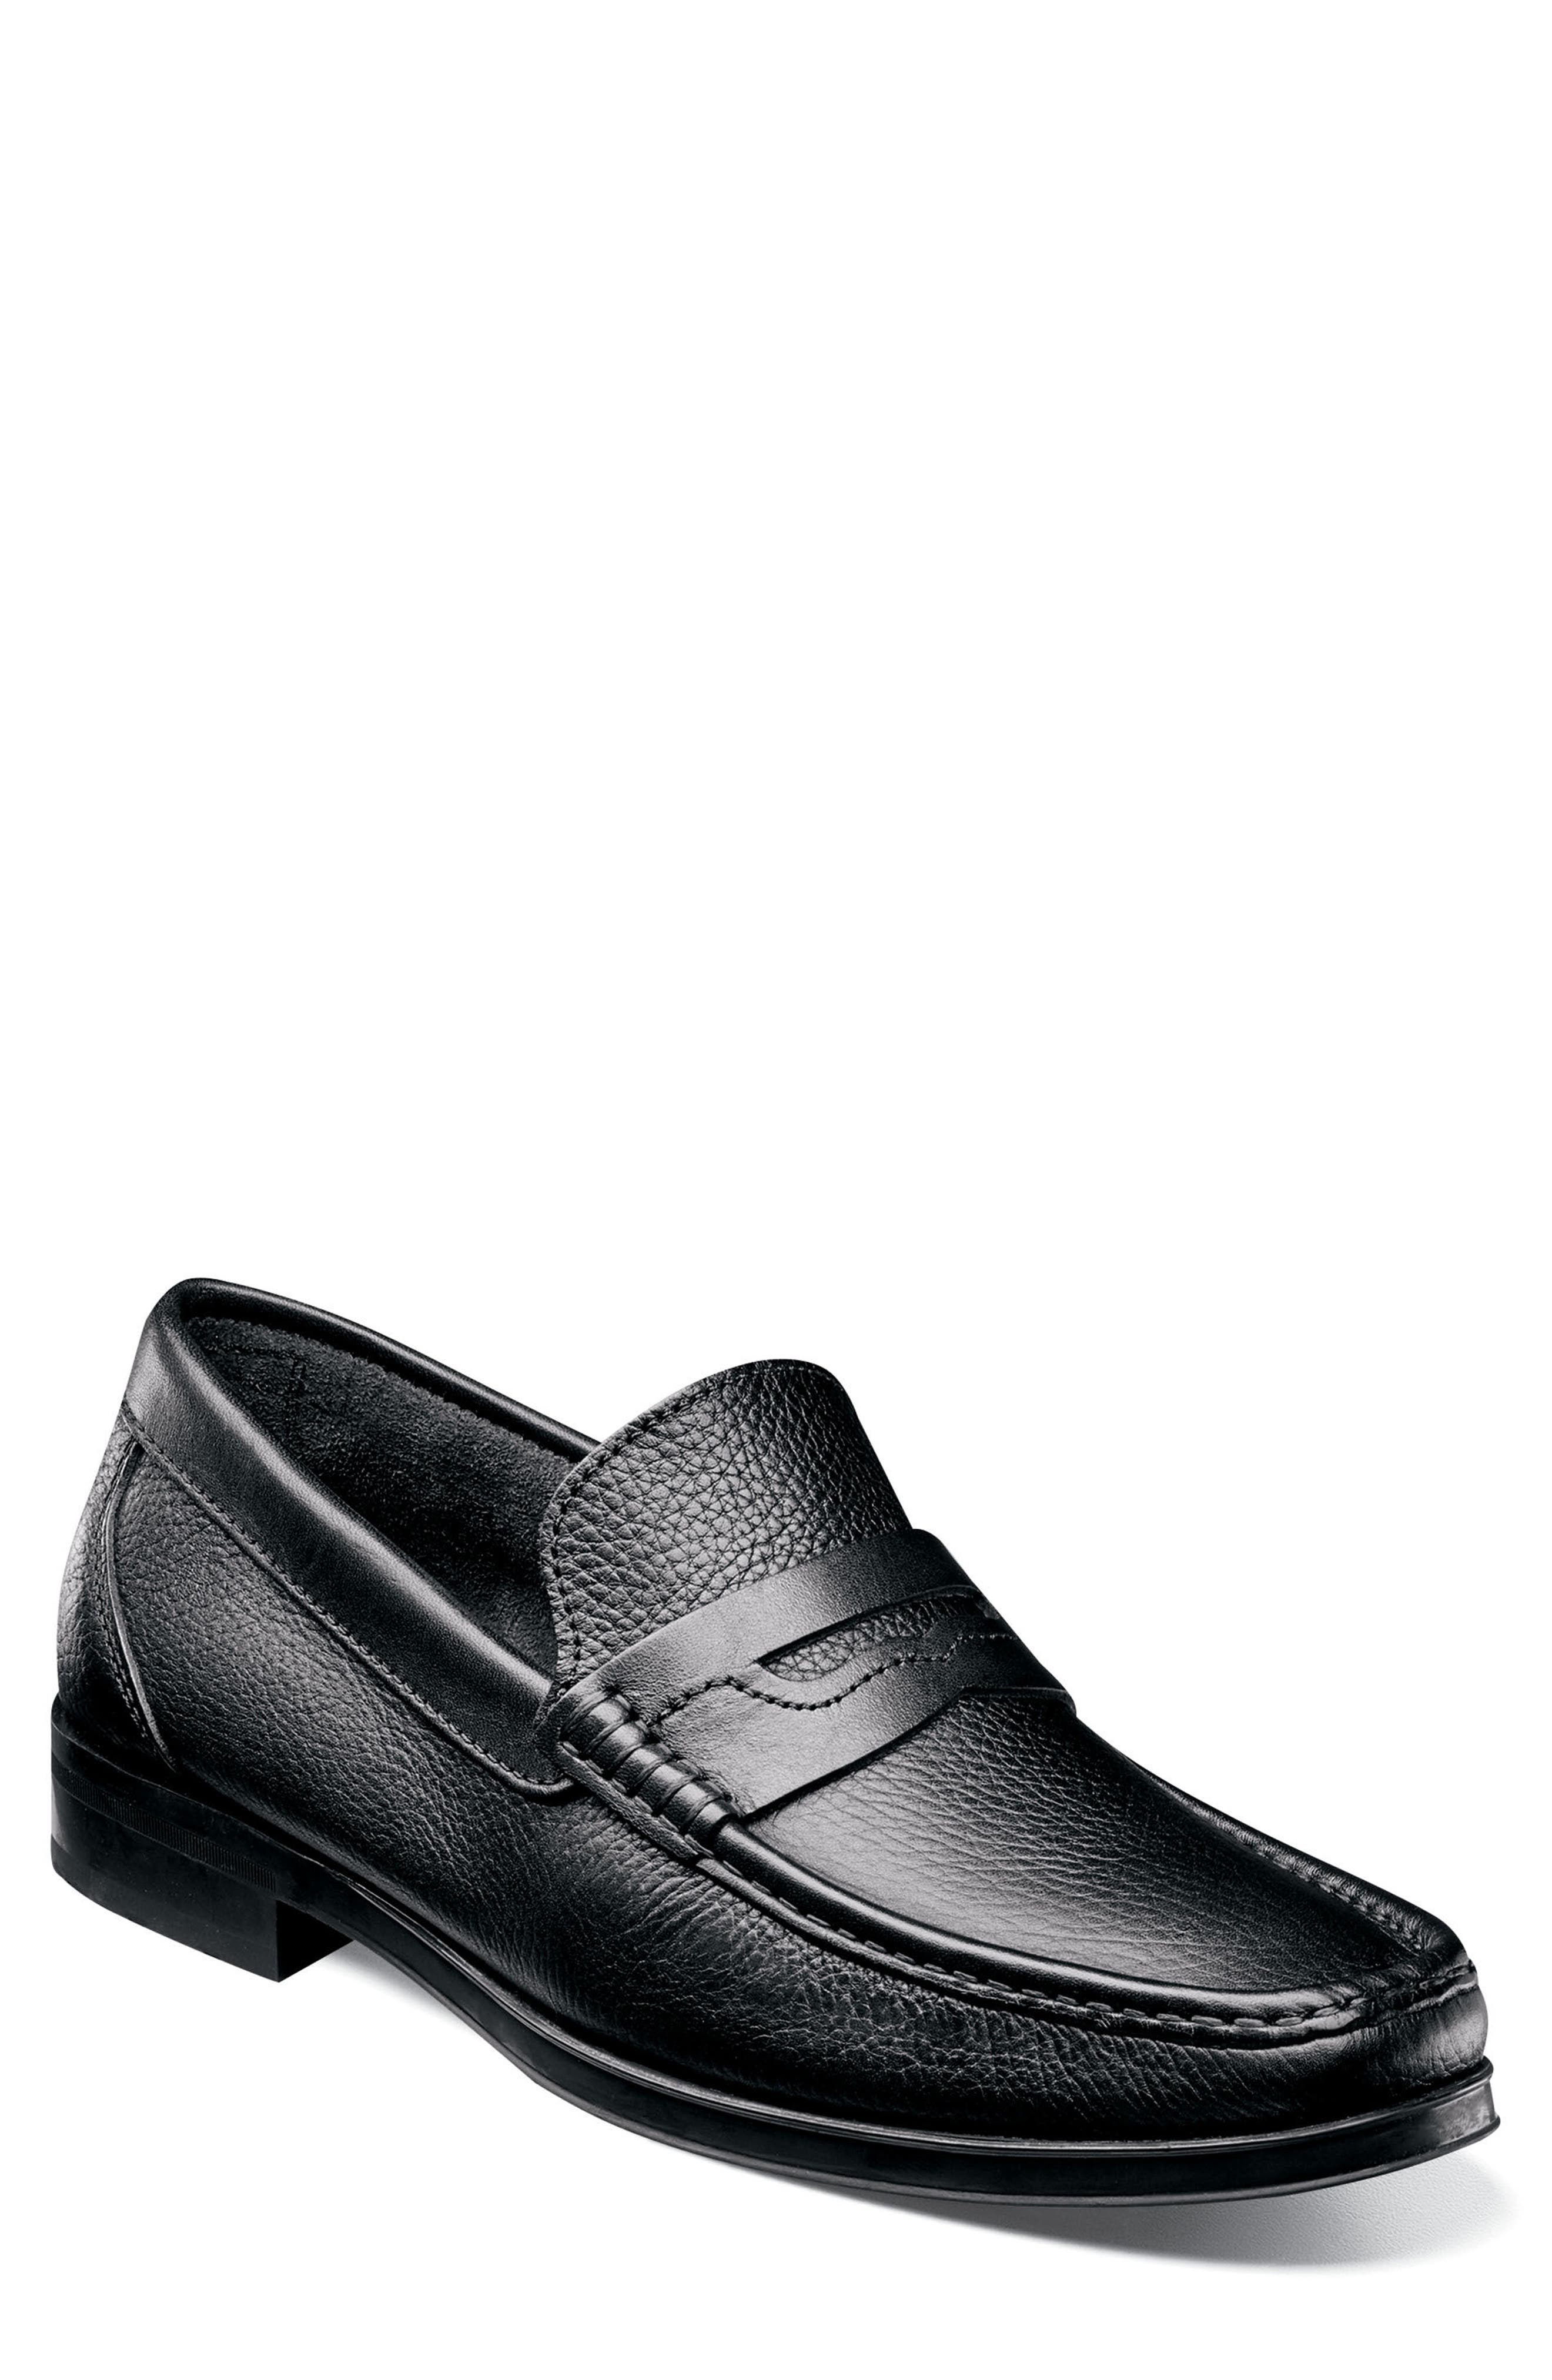 Westbrook Penny Loafer,                         Main,                         color, 007